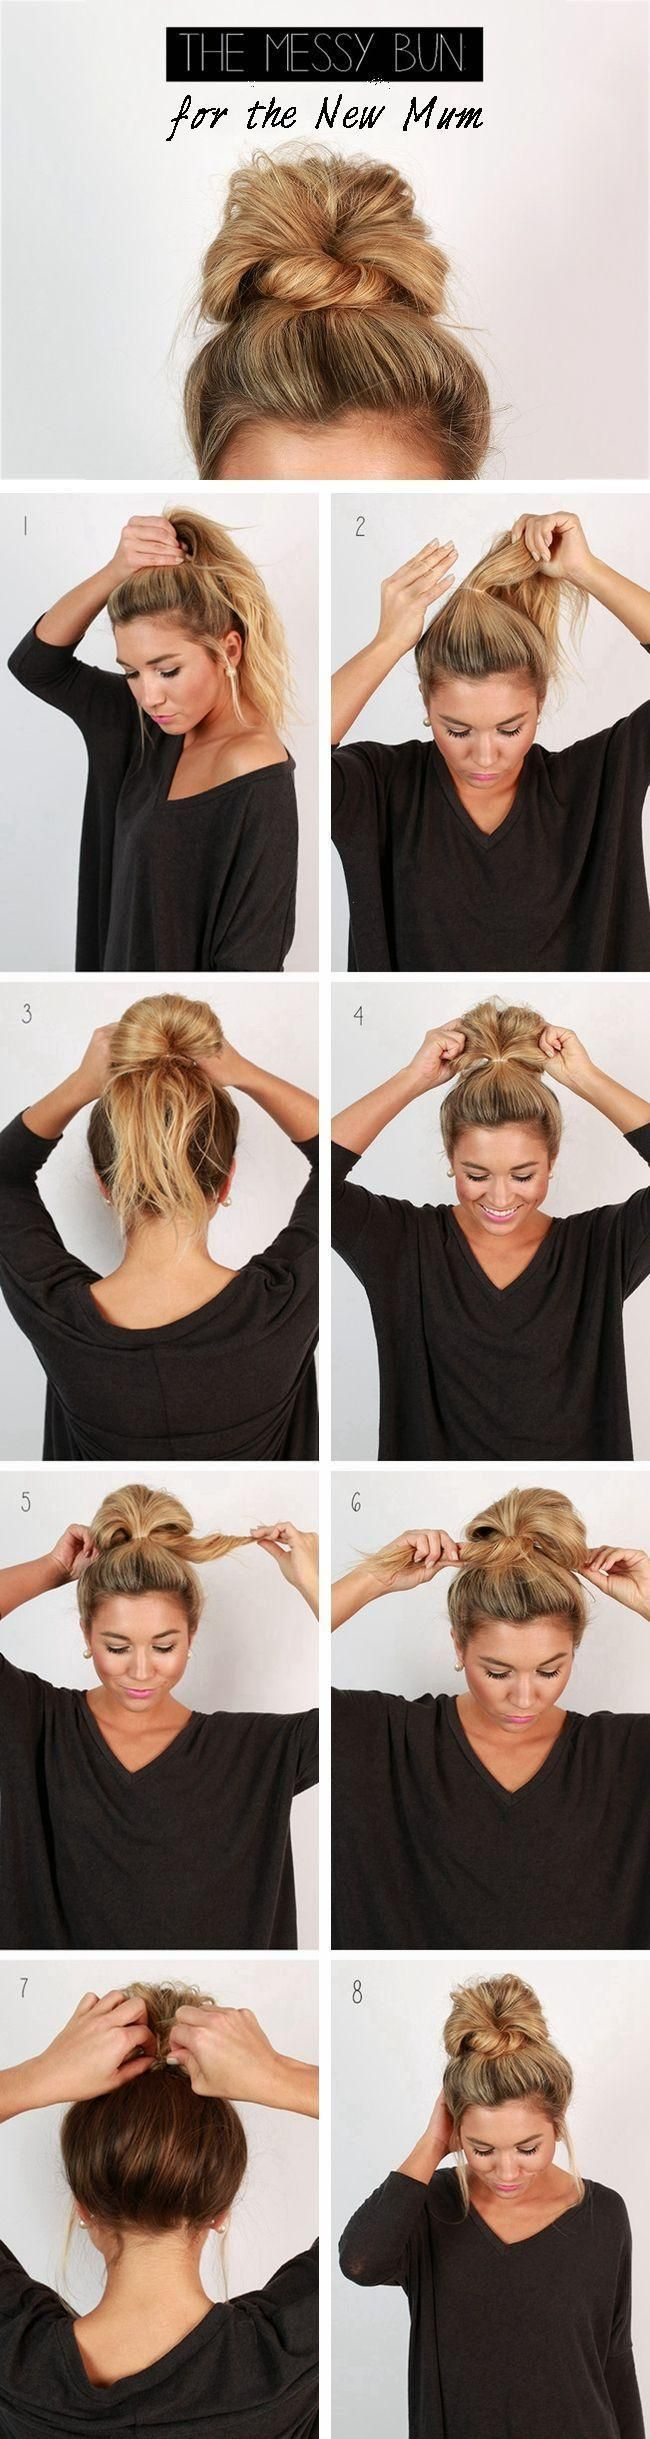 The best easy updo hairstyles badana hairstyles pinterest